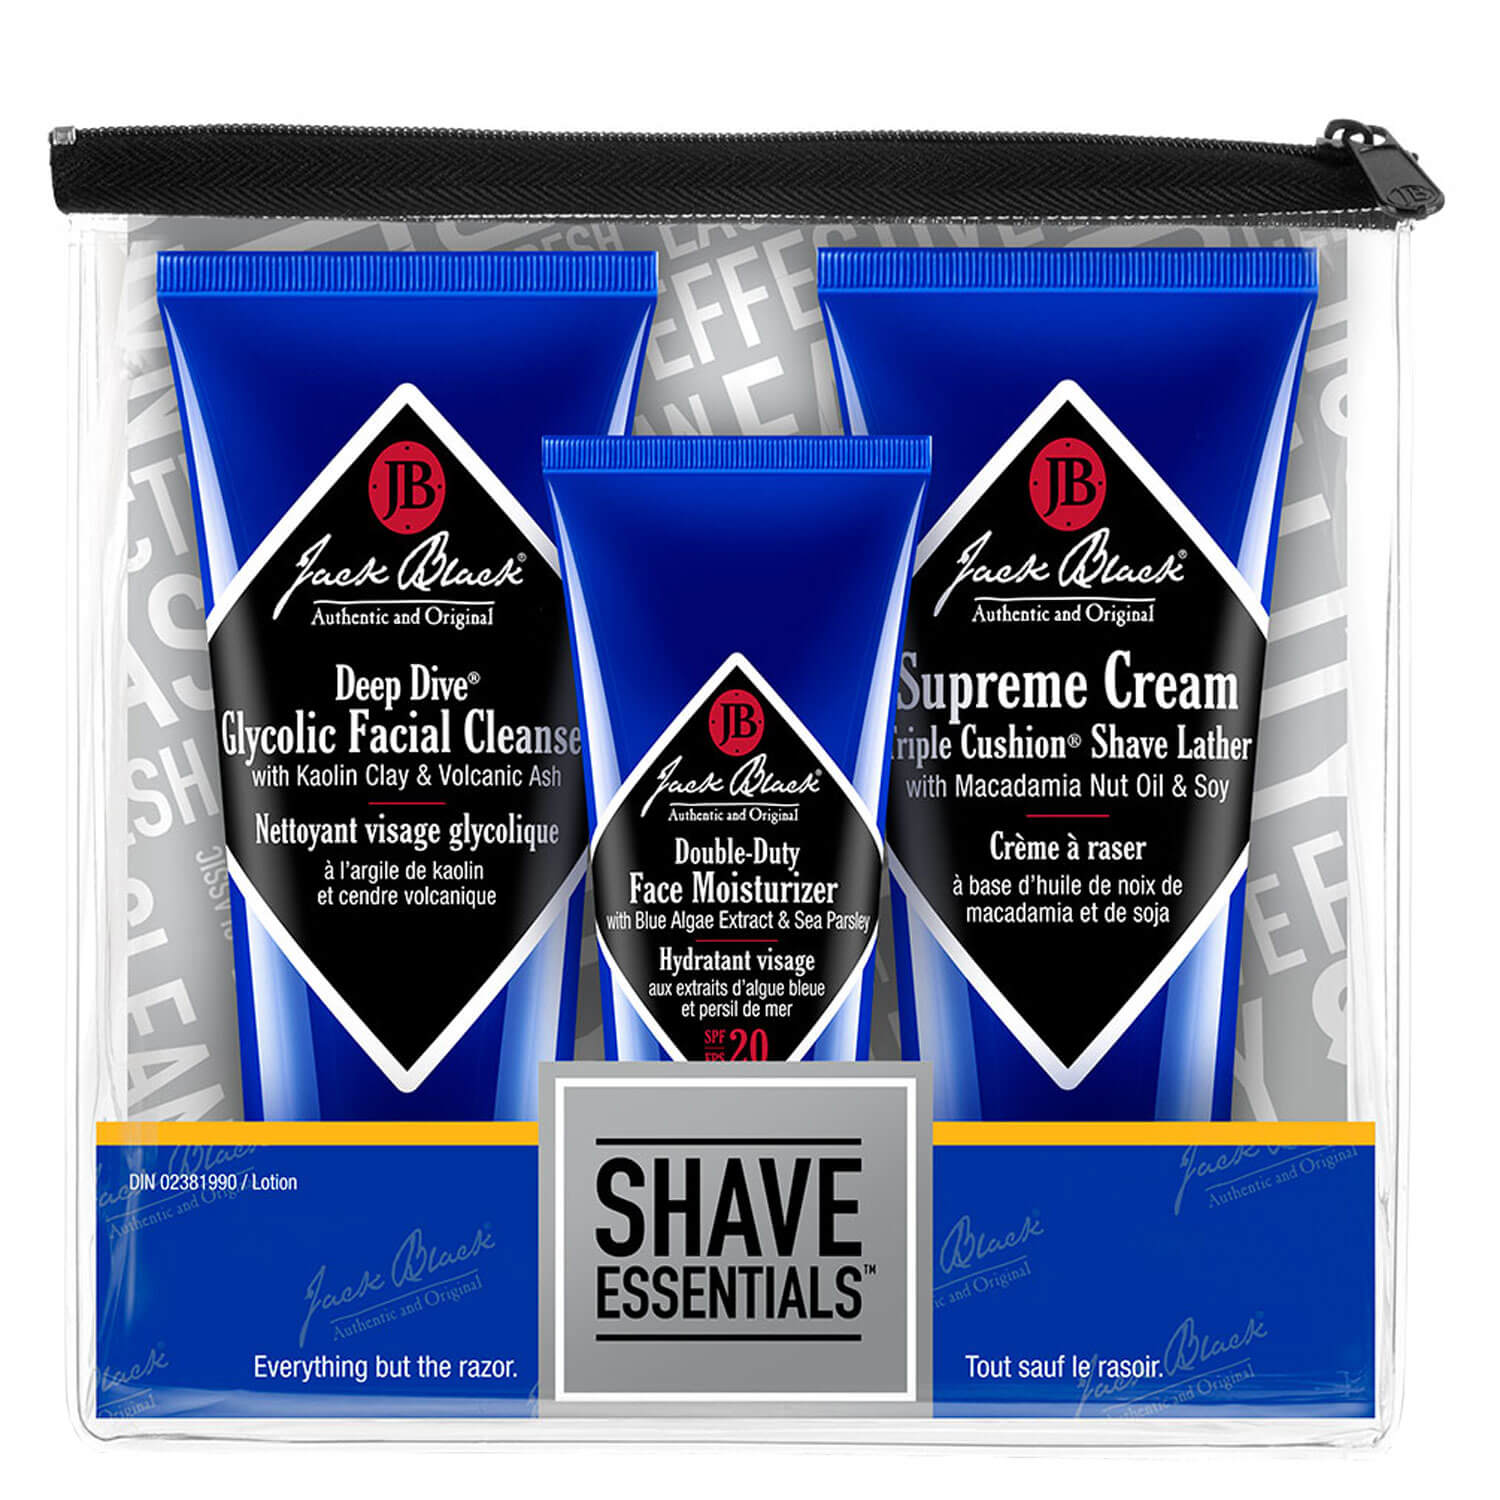 Jack Black - Shave Essentials